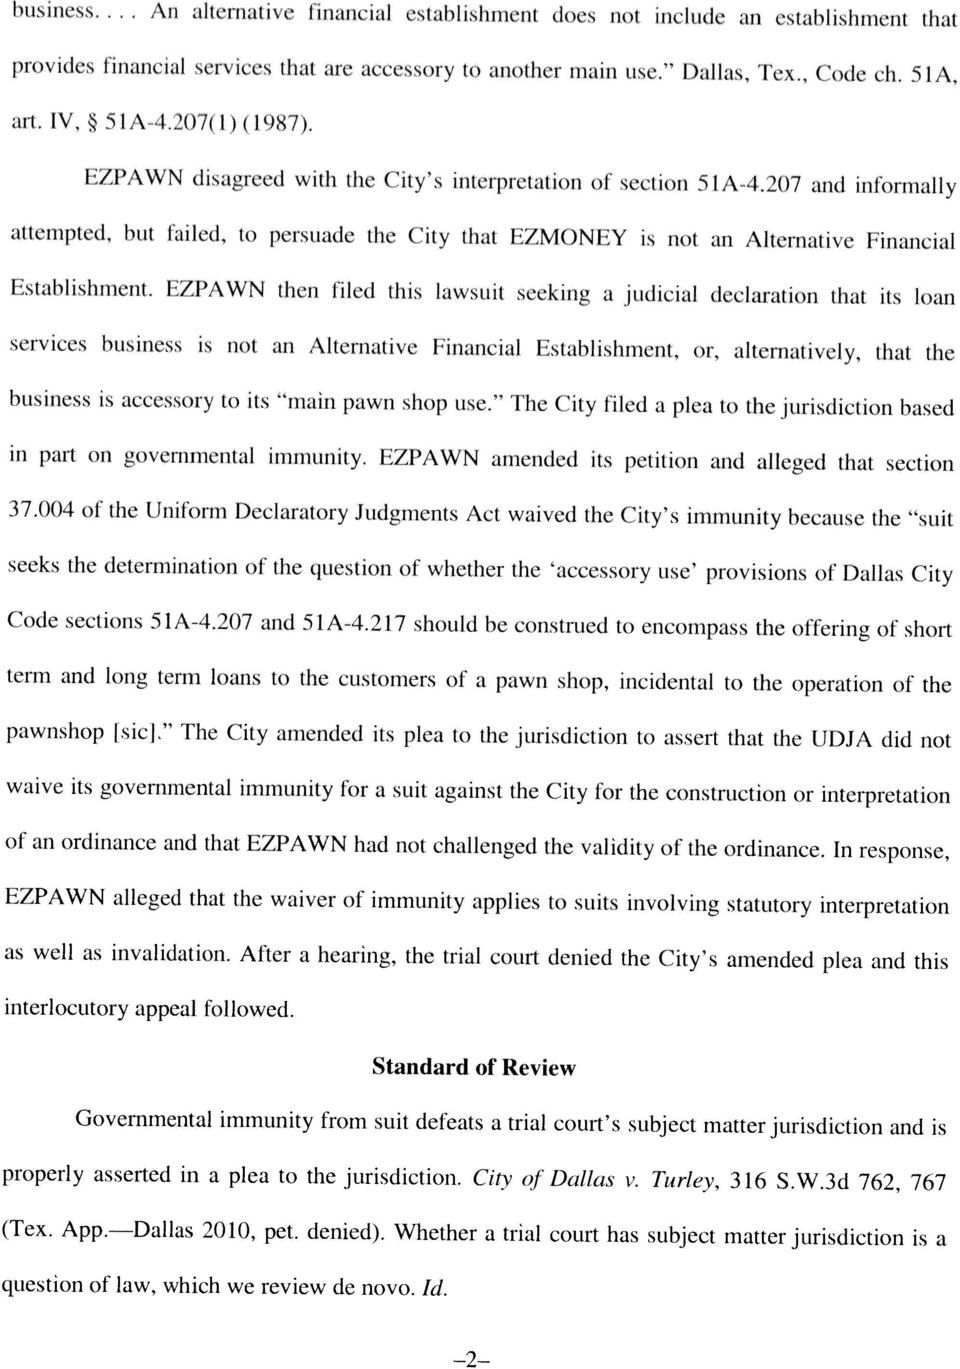 to persuade the City that EZMONEY is not an Alternative Financial Establishment.